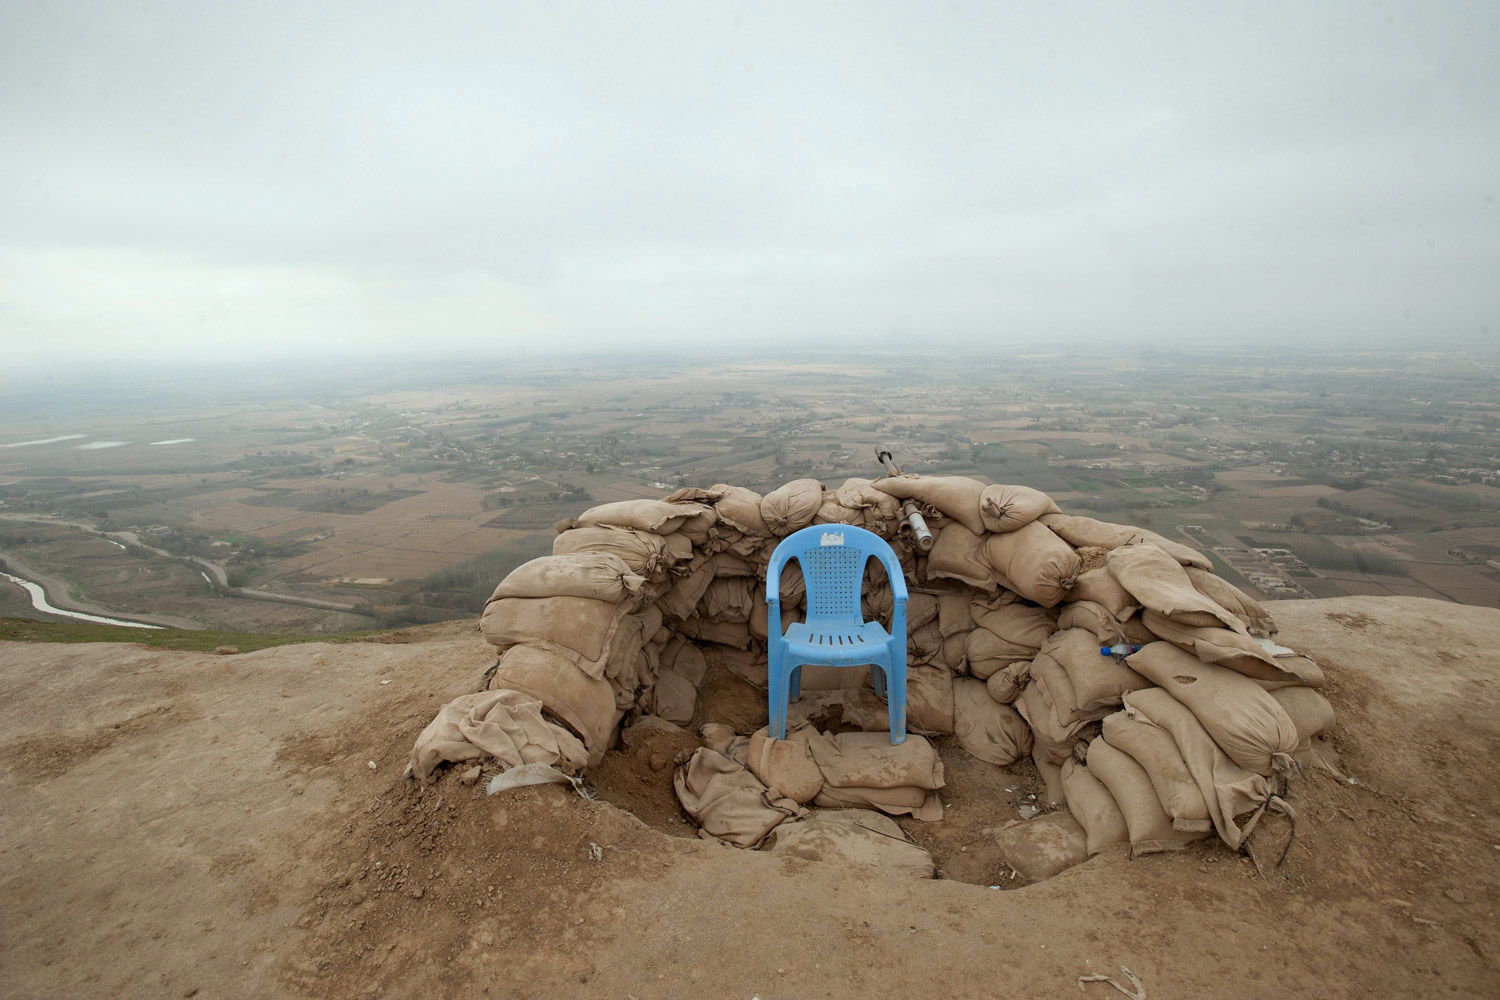 November 20, 2011. A chair sits unoccupied at what is supposed to be an observation post for the Afghan National Army near Pol-e Khomri in northern Afghanistan. Despite billions of dollars in U.S. aid, the Afghan army remains weak and divided.